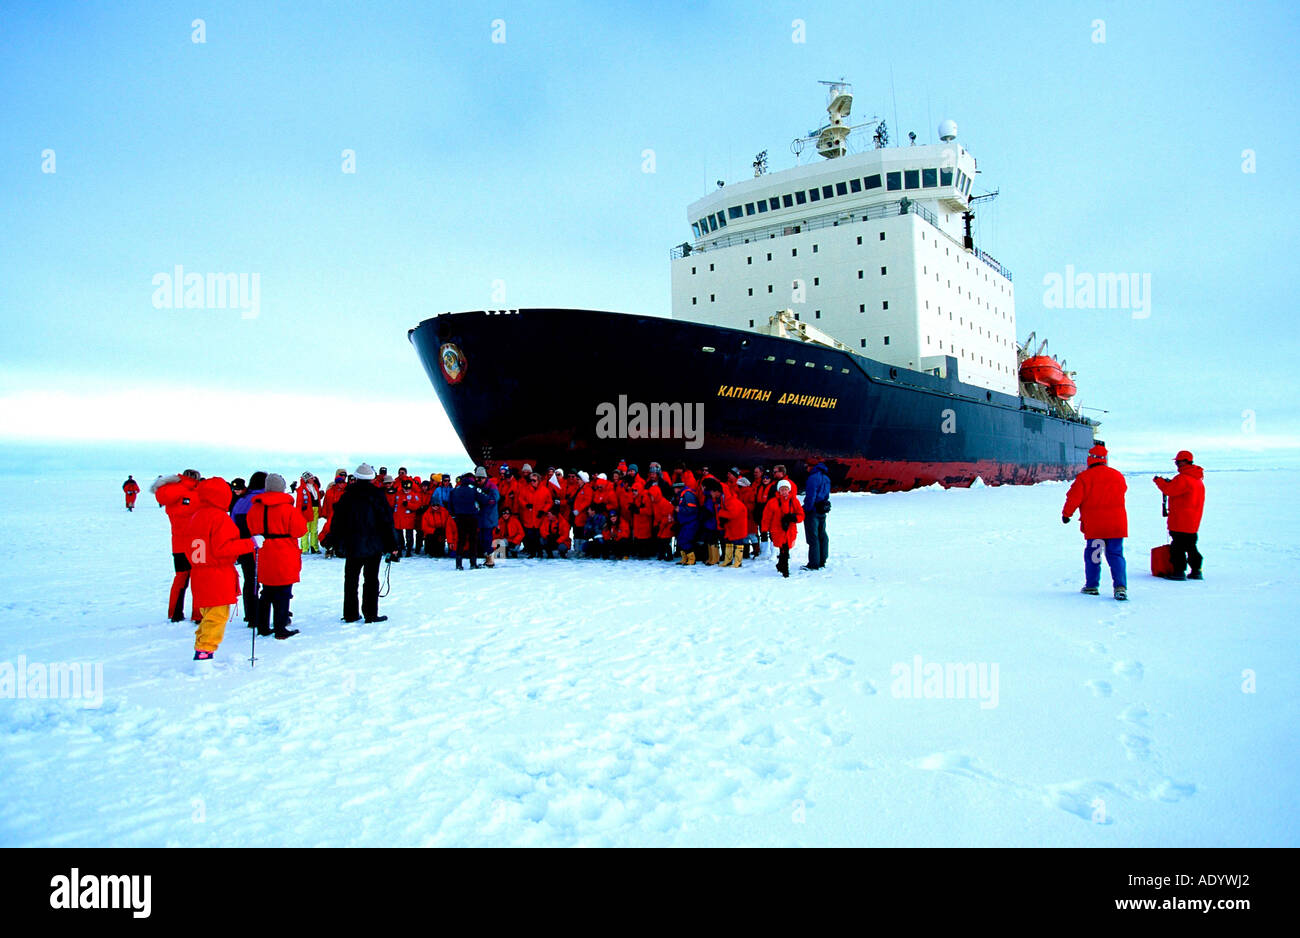 antartica holidays with icebreaker ship - Stock Image